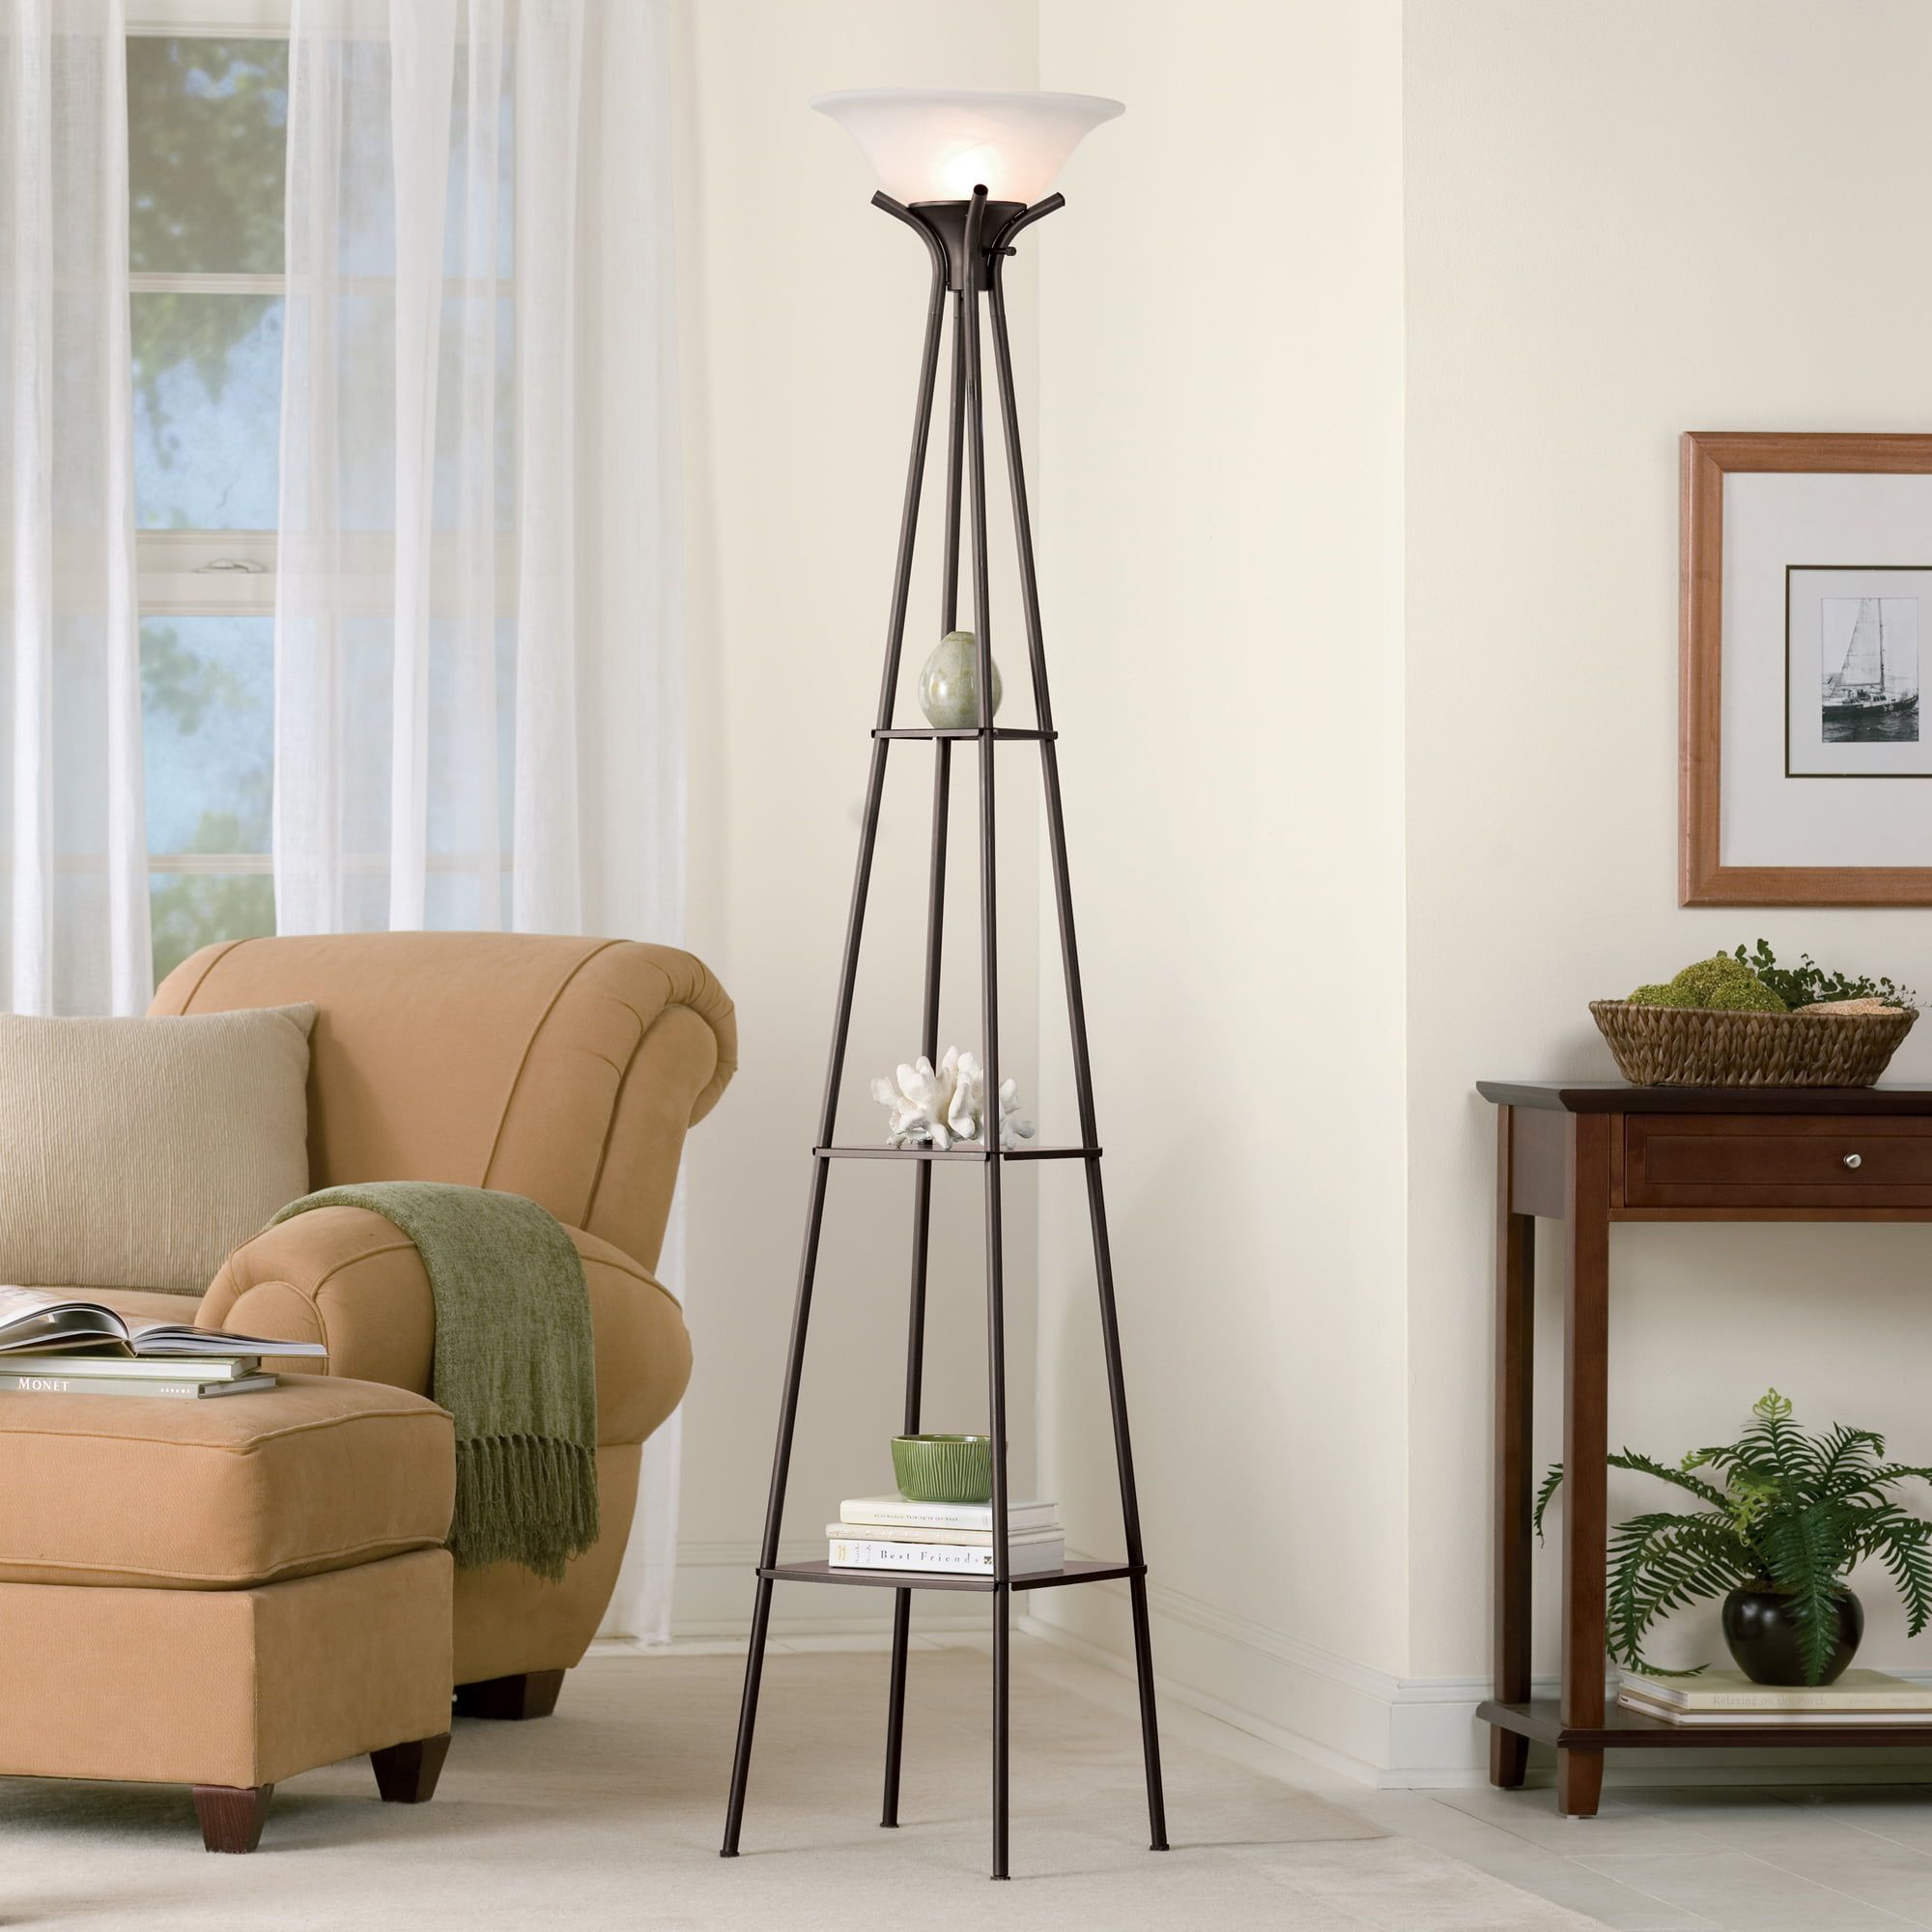 Tall Modern Floor Lamp Charcoal Finish Shelf Light Living ...